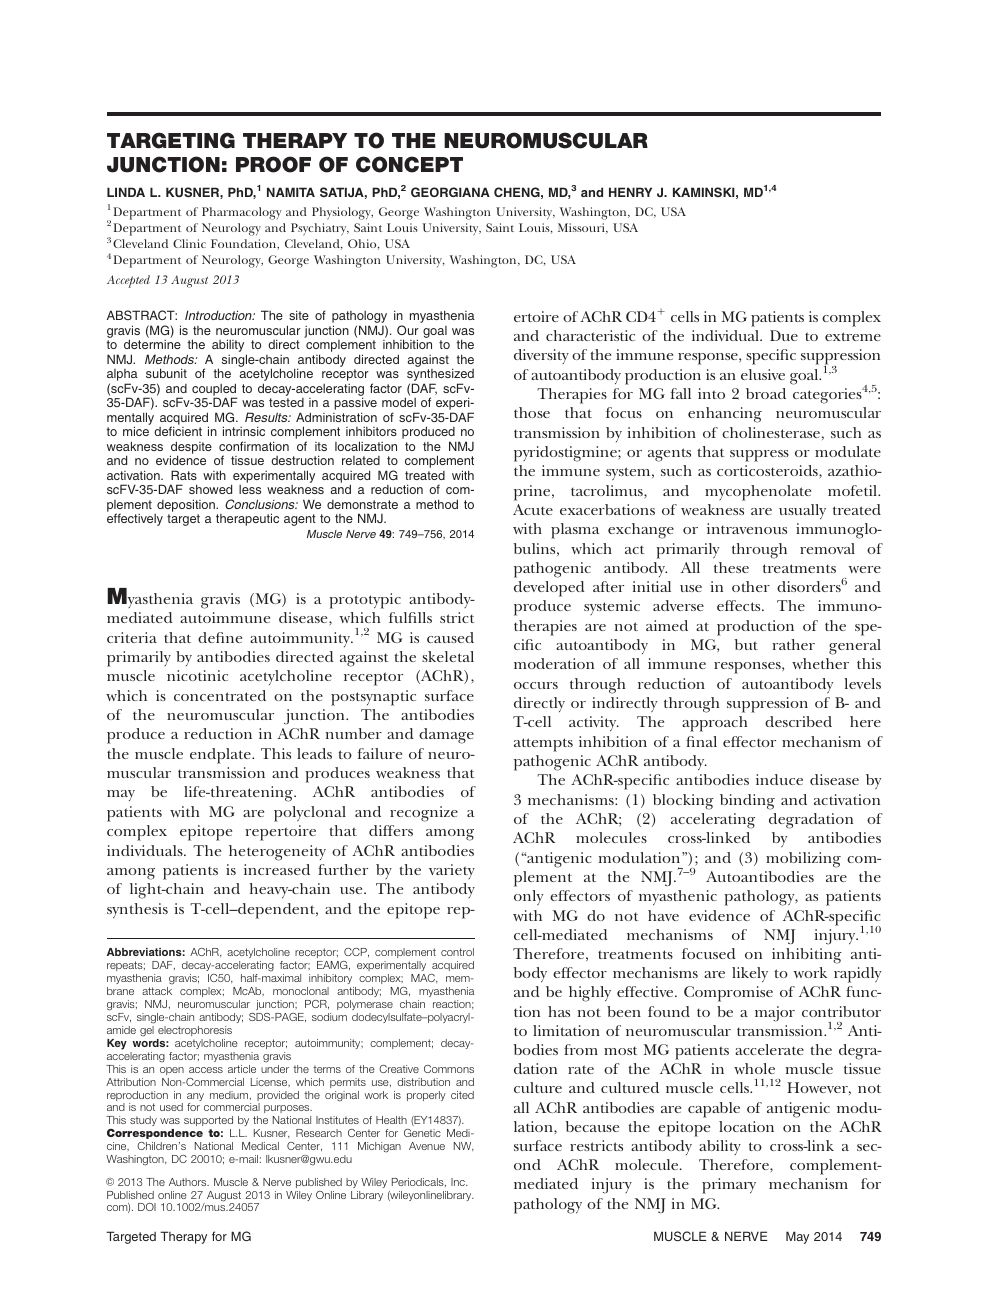 Targeting therapy to the neuromuscular junction: Proof of concept